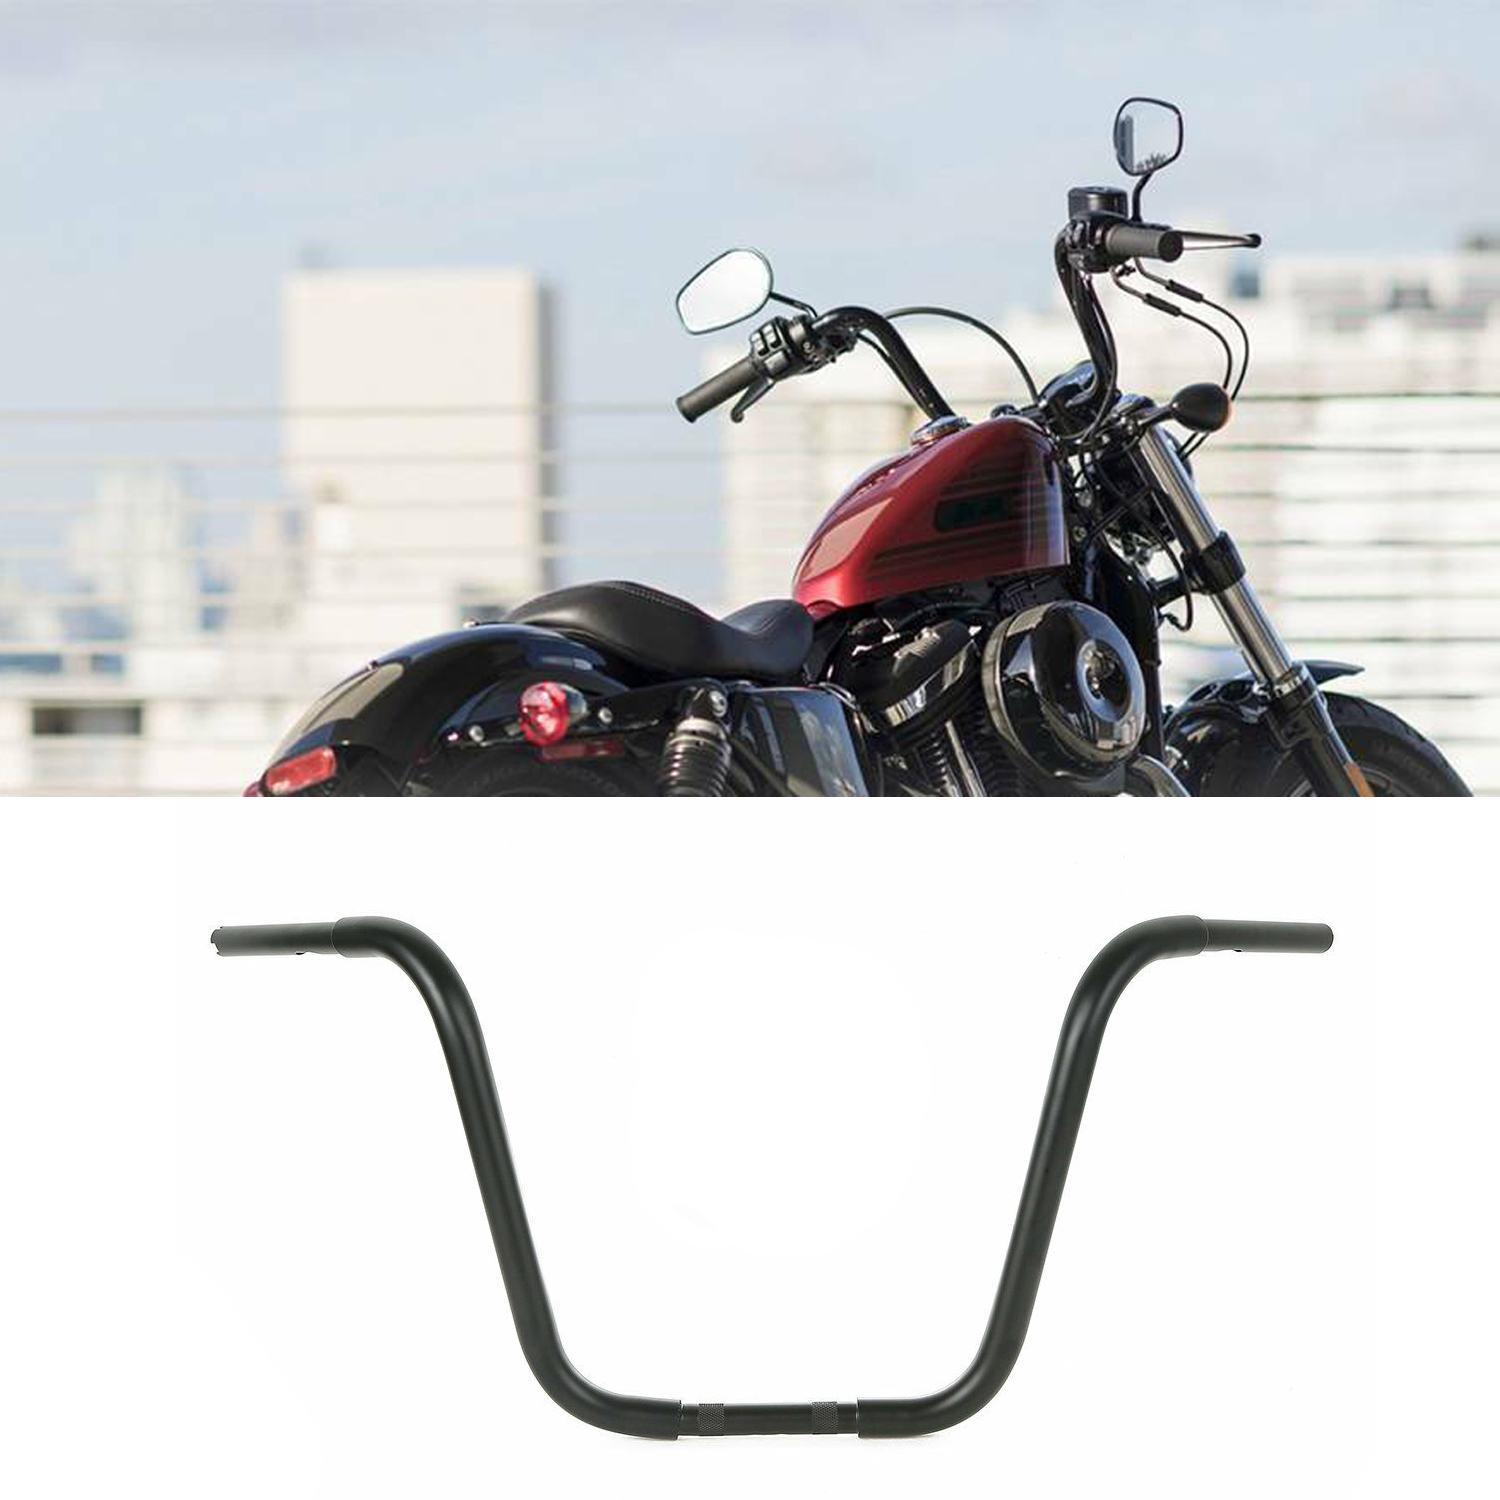 14 Inch Ape Hanger Handlebar For Harley Softail Dyna Sportster Road King Black Sindan Motorcycle Accessories